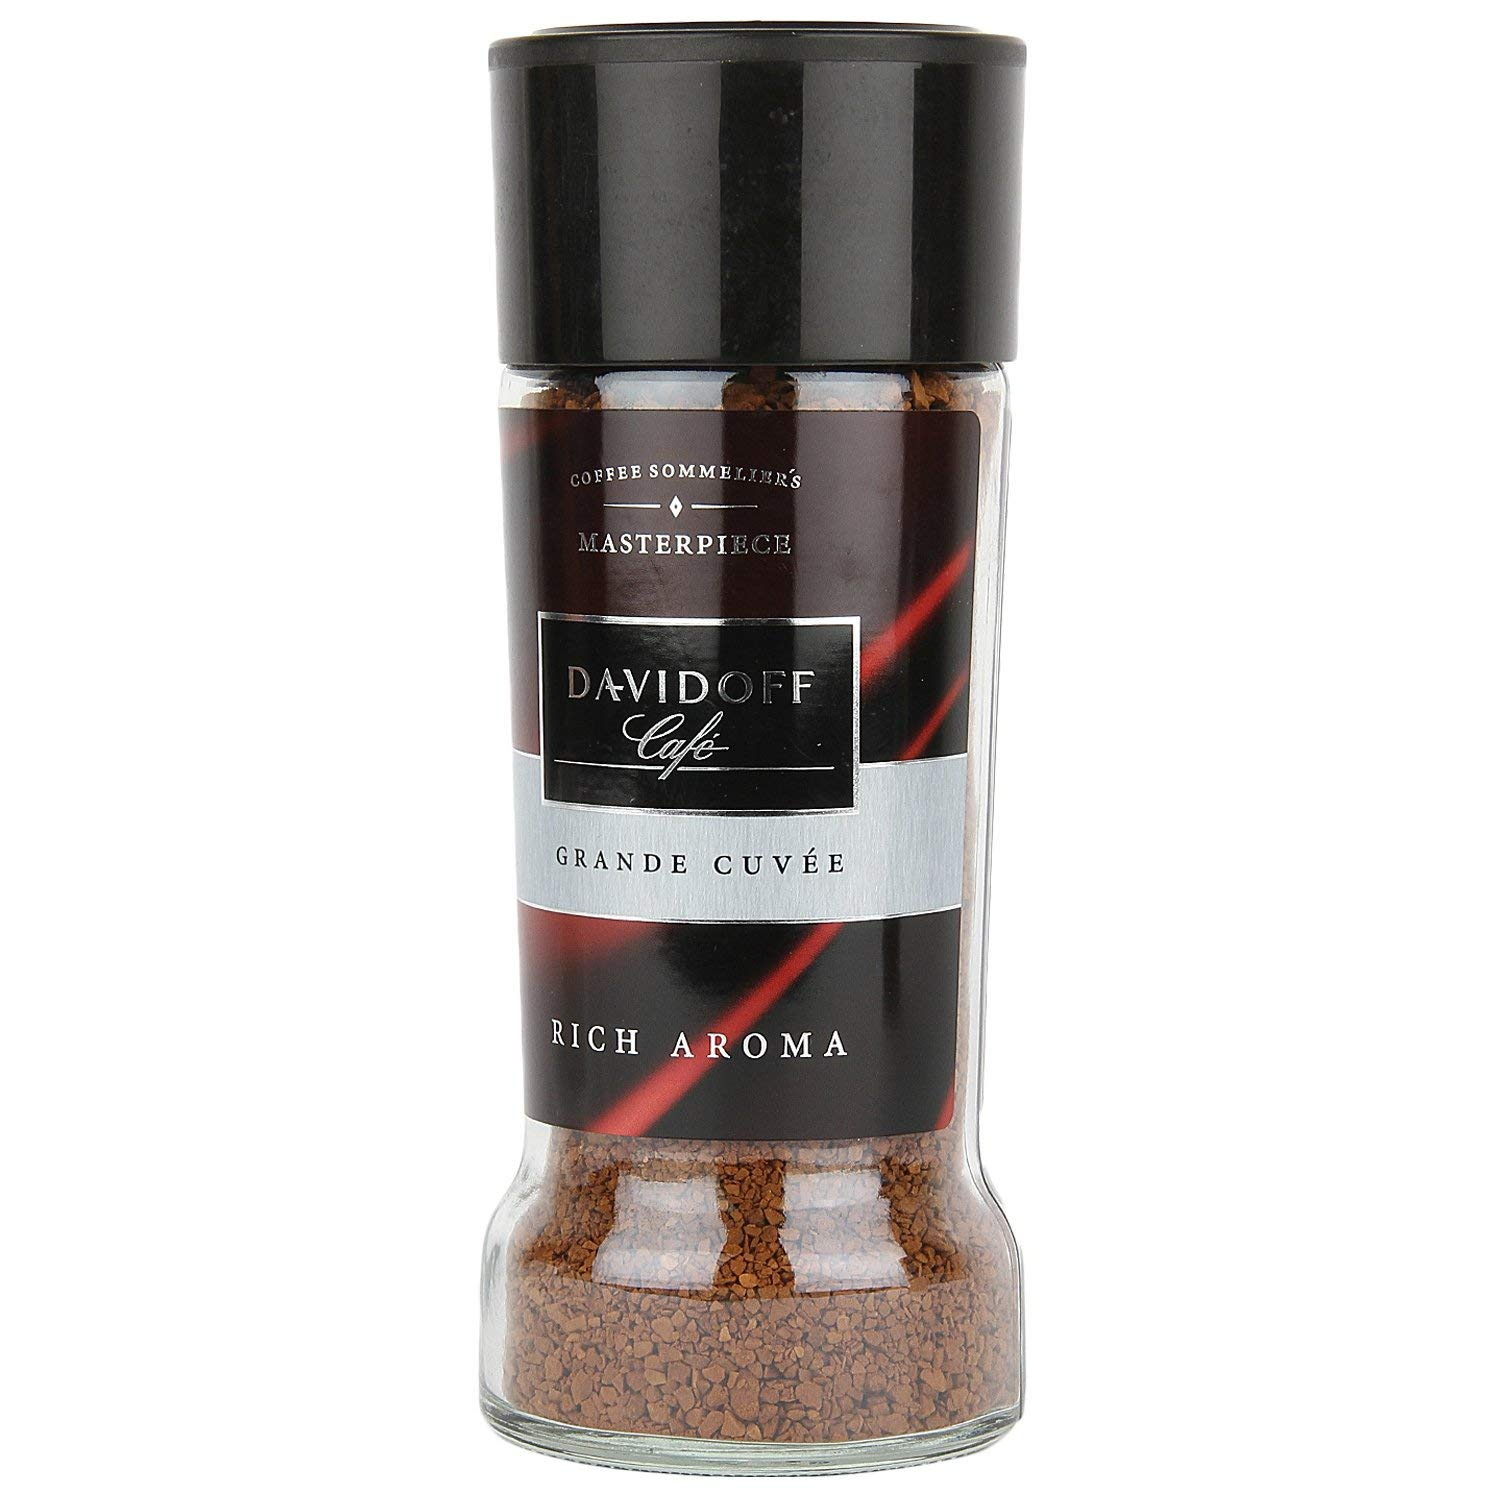 Davidoff Rich Aroma Coffee - 100g (pc)